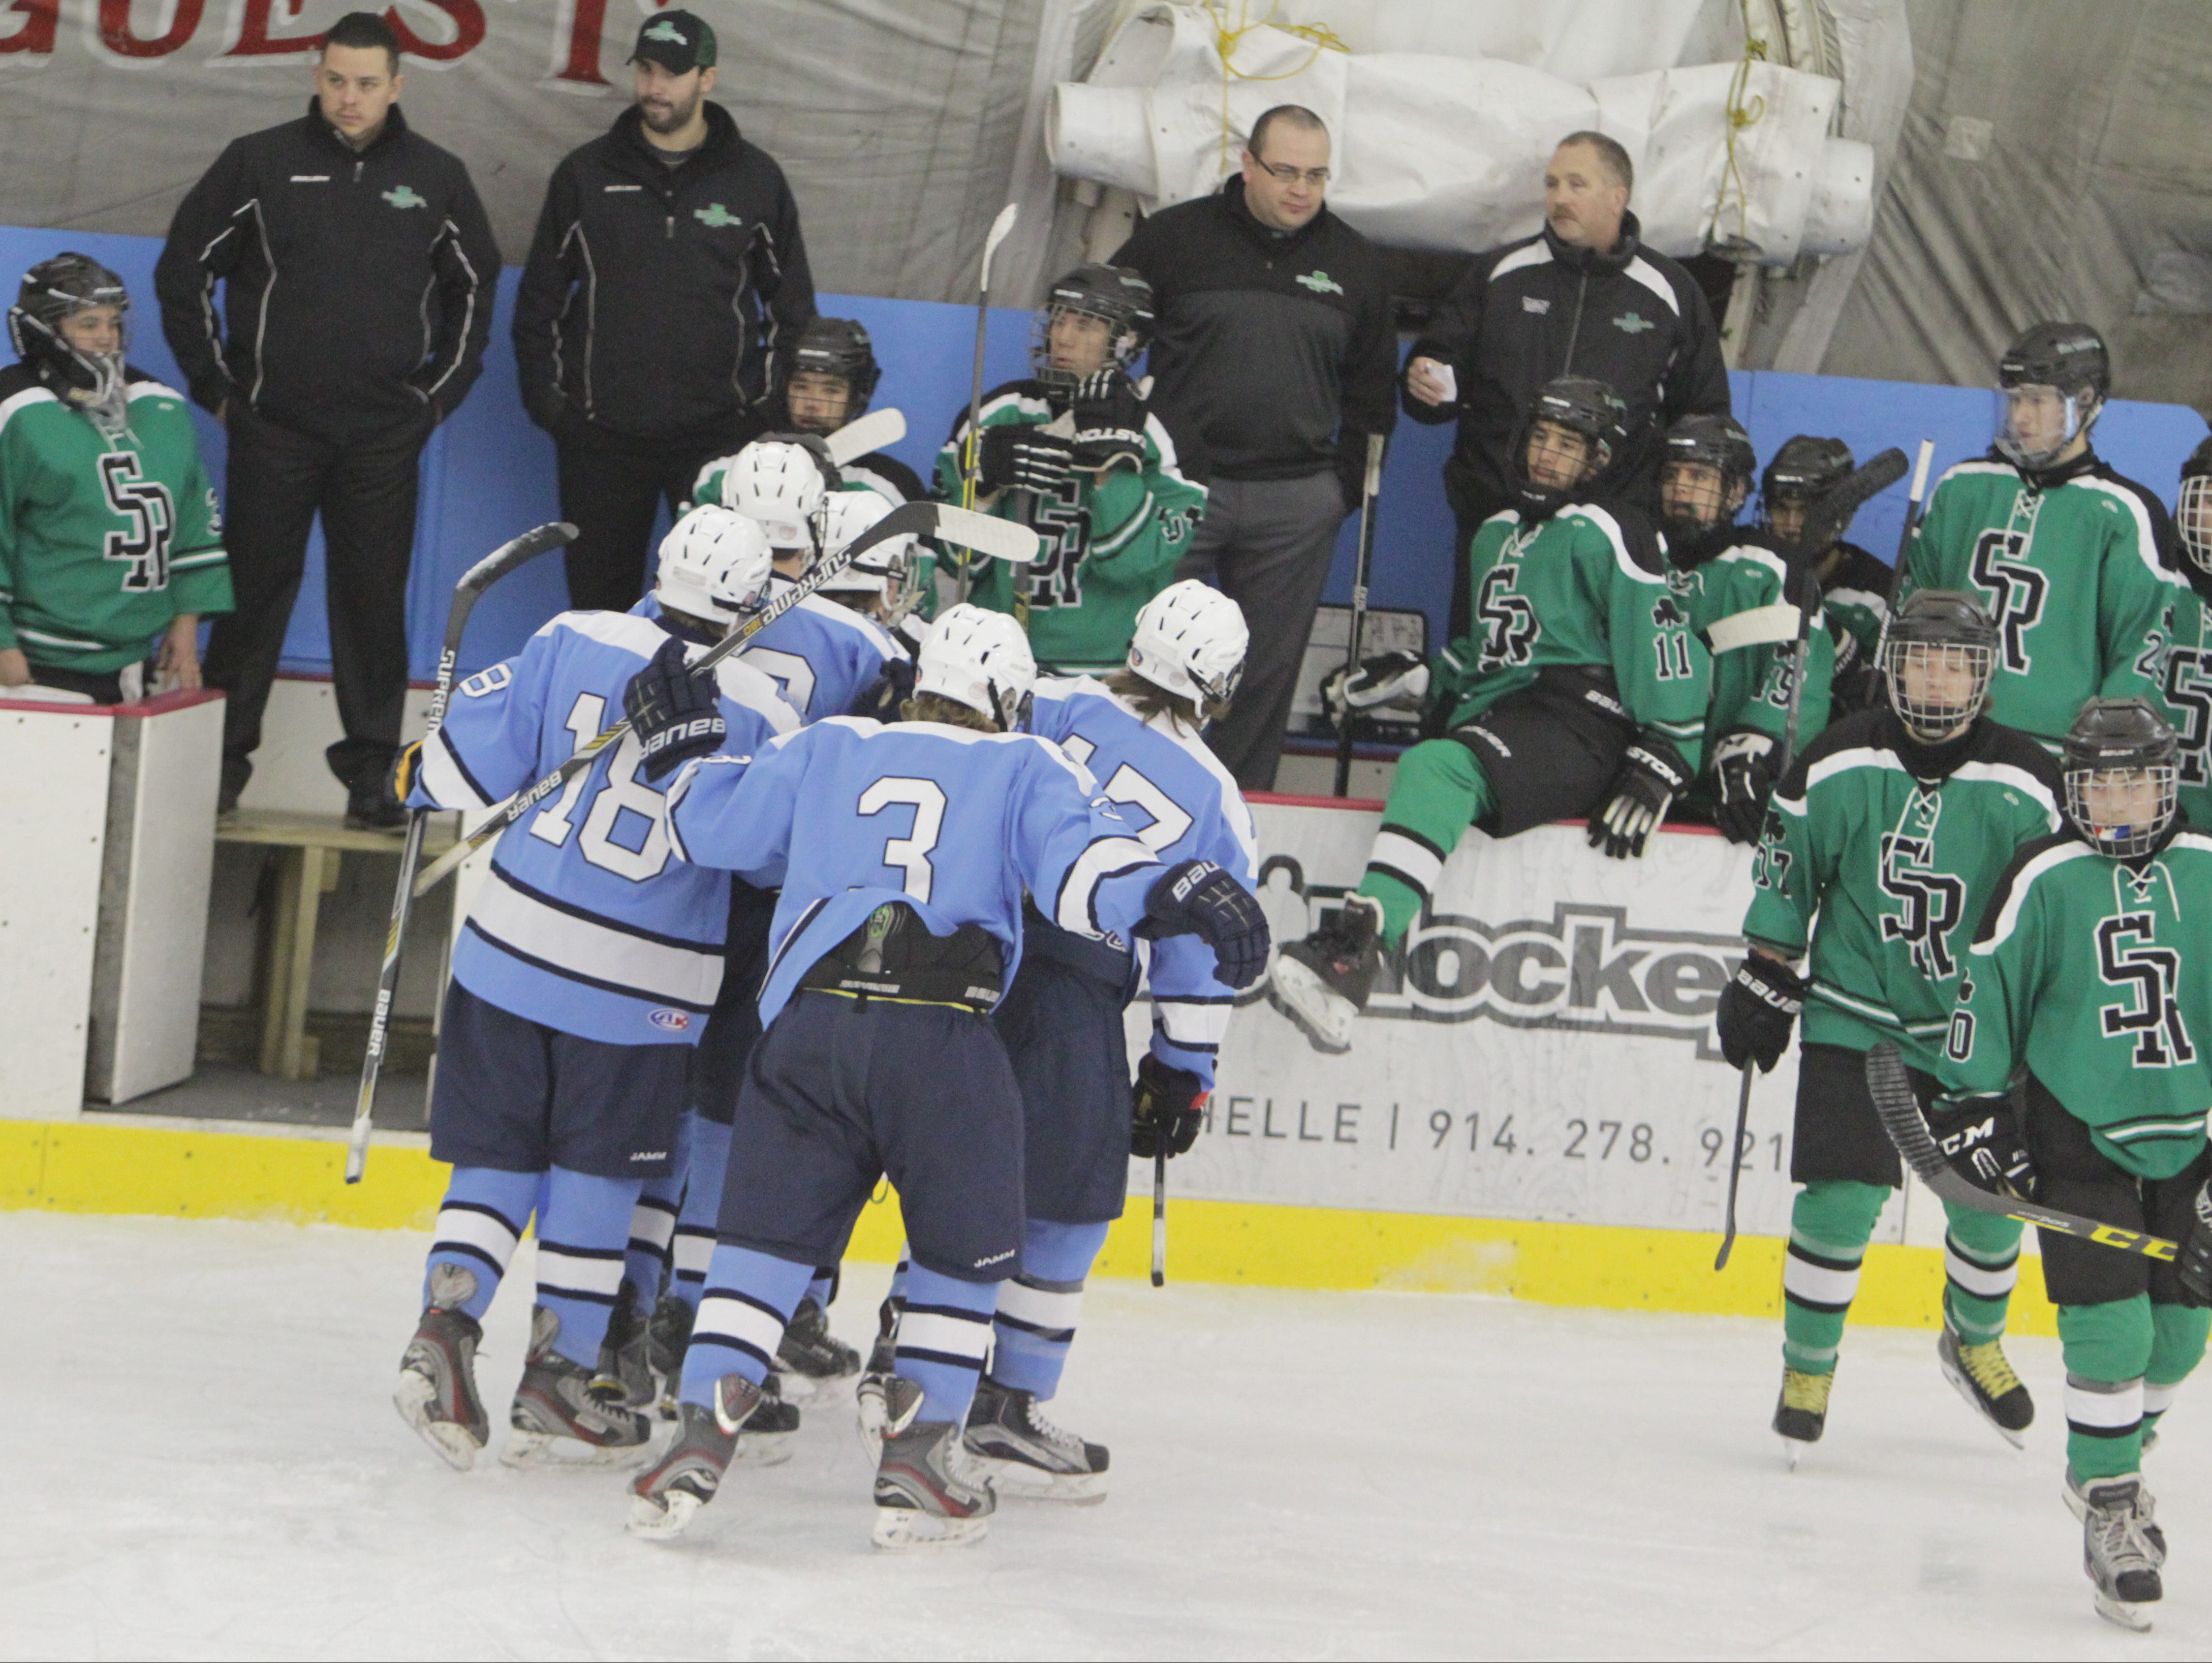 Pelham celebrates after Phil Dutko's goal to open the scoring in a game against Salmon River at the Ice Hutch in Mount Vernon on Friday, January 15th, 2016. Pelham won 8-0.